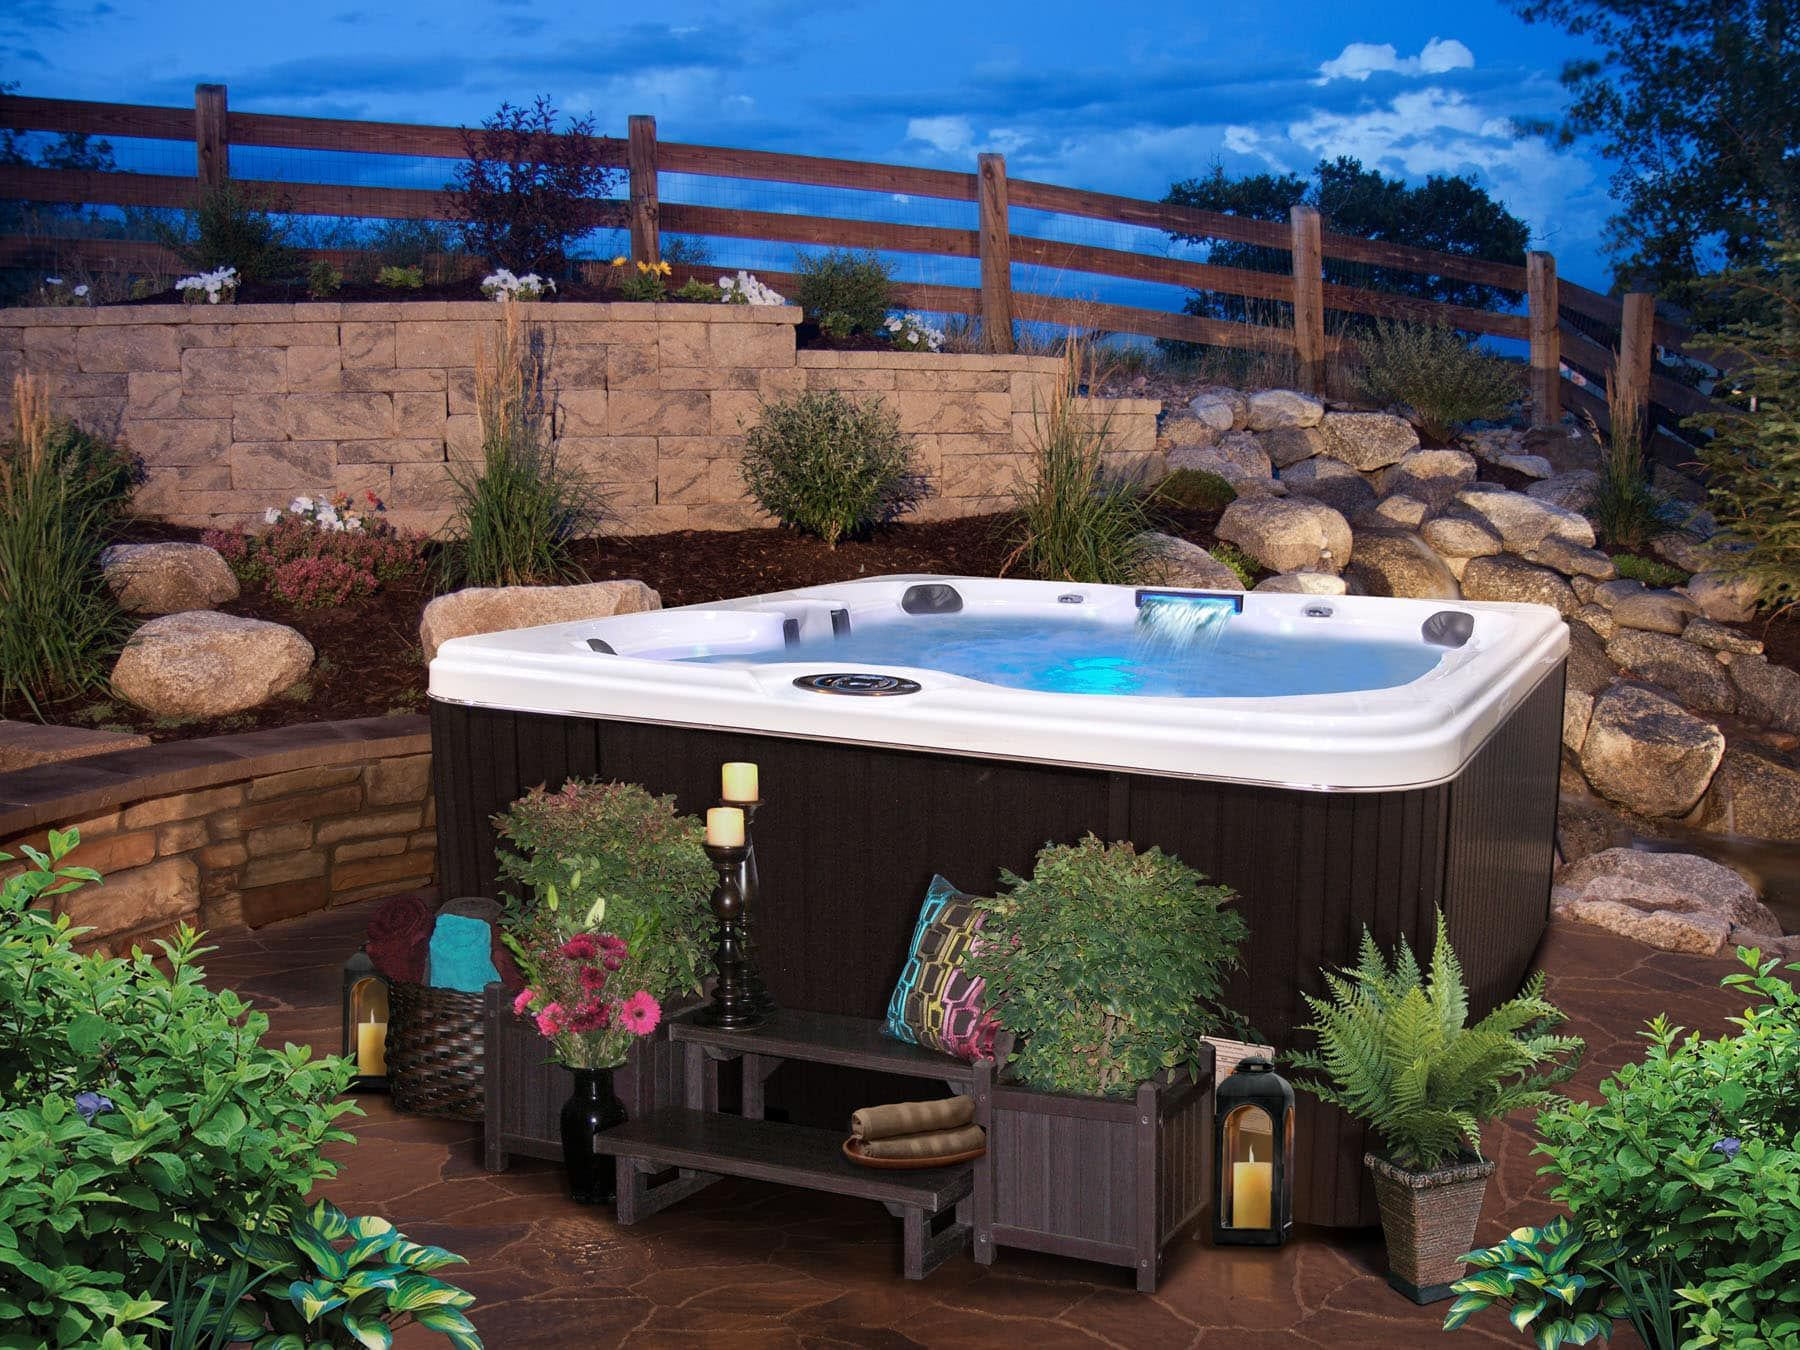 Pin By Tyuka Home Decor Style On Pool Time Hot Tub Ideas Hot Tub Outdoor Hot Tub Landscaping Hot Tub Backyard